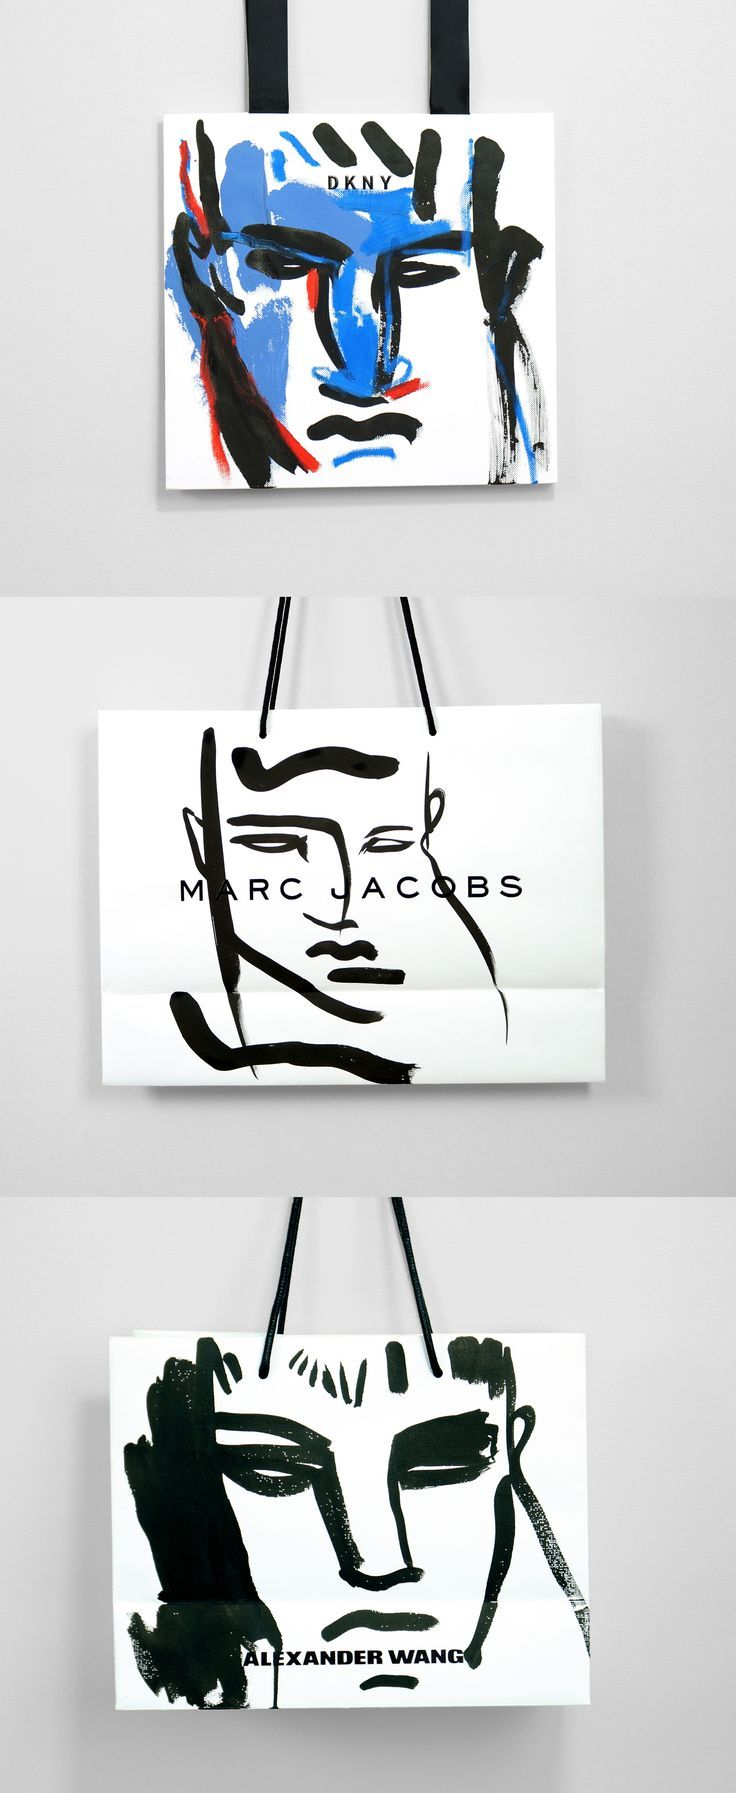 Illustrated and re-imagined retail shopping bags by Neil Gilks. - shopping bag, leather bags for sale, small black leather bag *sponsored https://www.pinterest.com/bags_bag/ https://www.pinterest.com/explore/bags/ https://www.pinterest.com/bags_bag/messenger-bags/ https://us.puma.com/en_US/women/accessories/bags